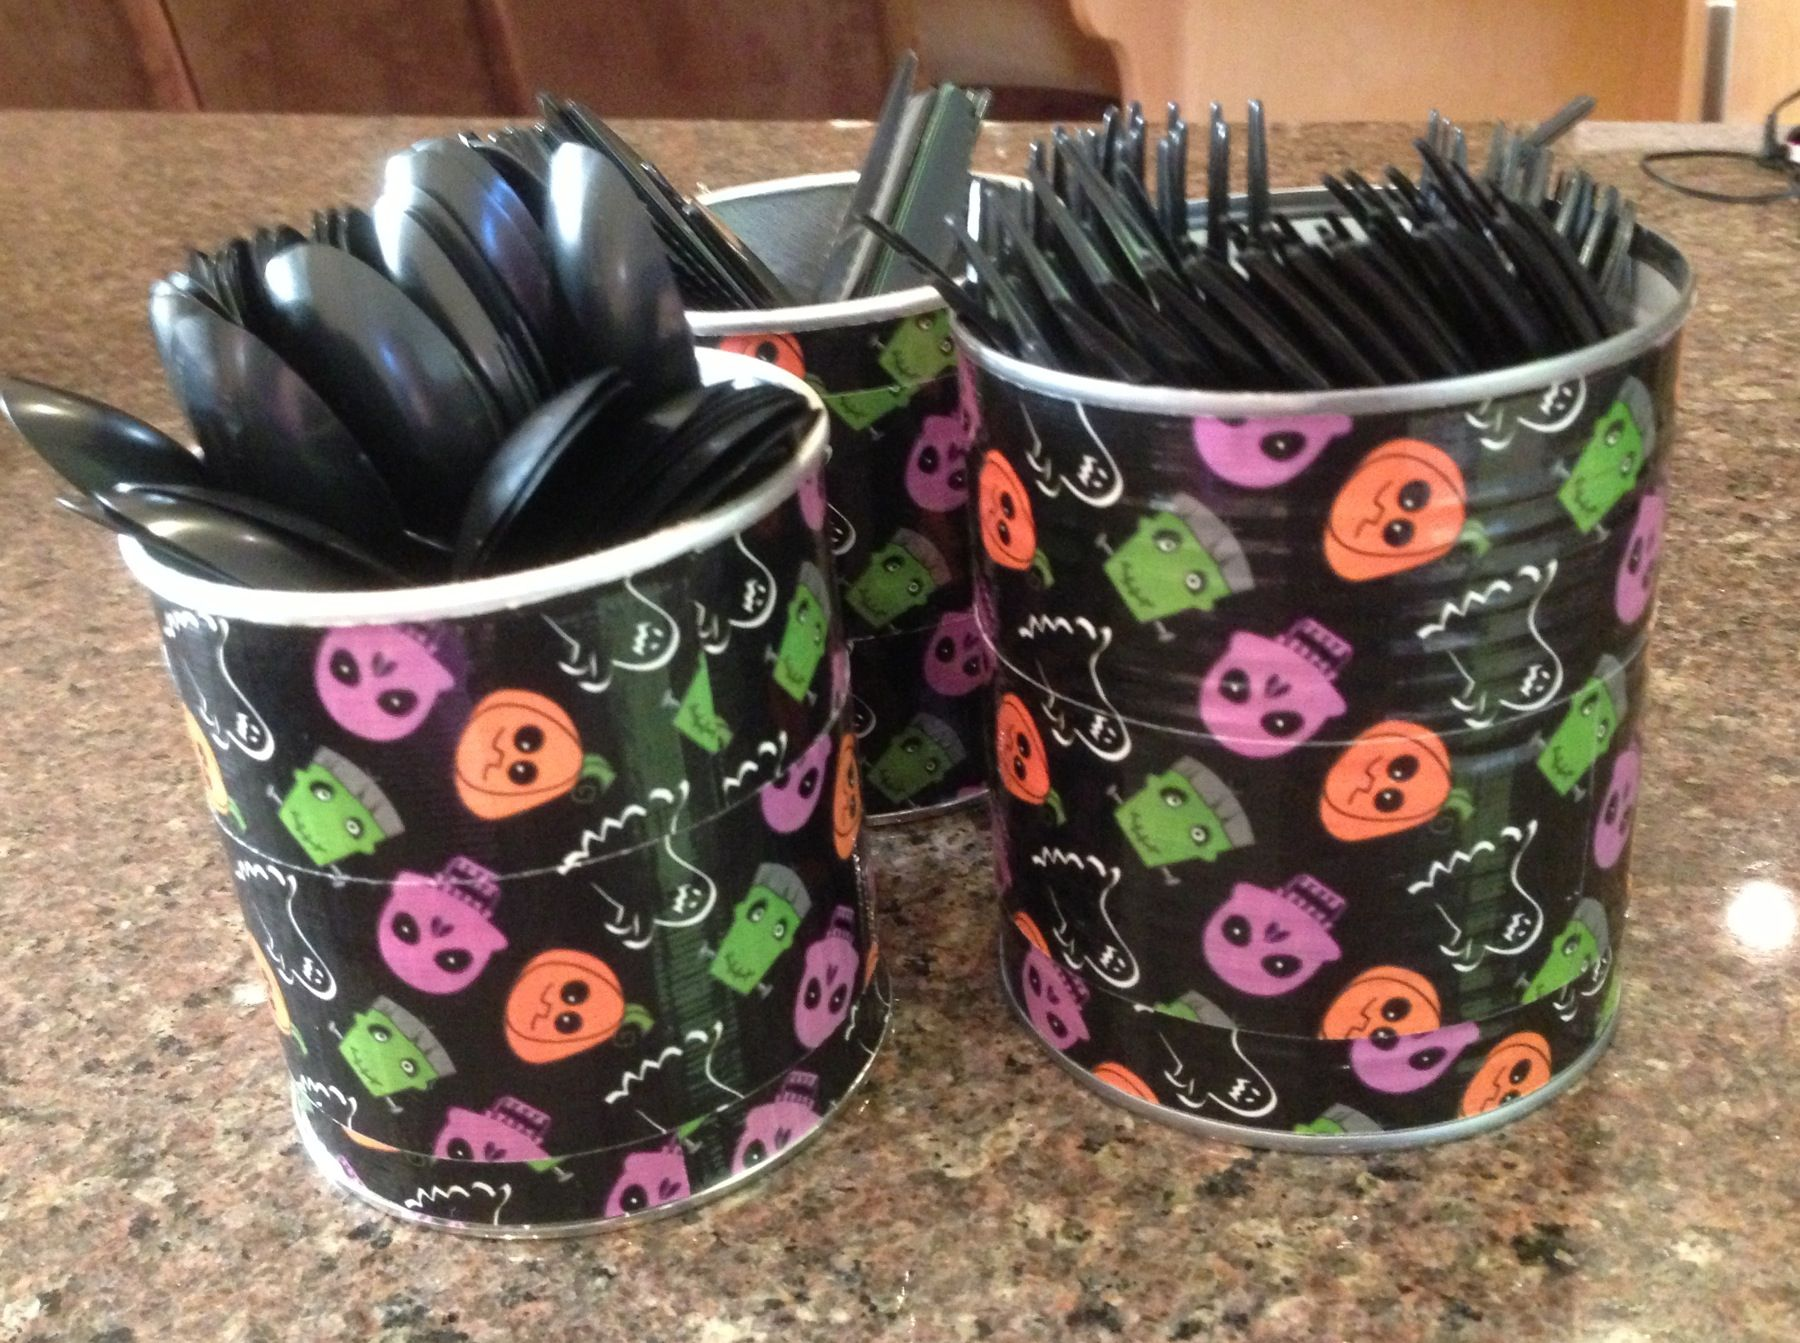 Duck tape on cans to hold utensils for Halloween party